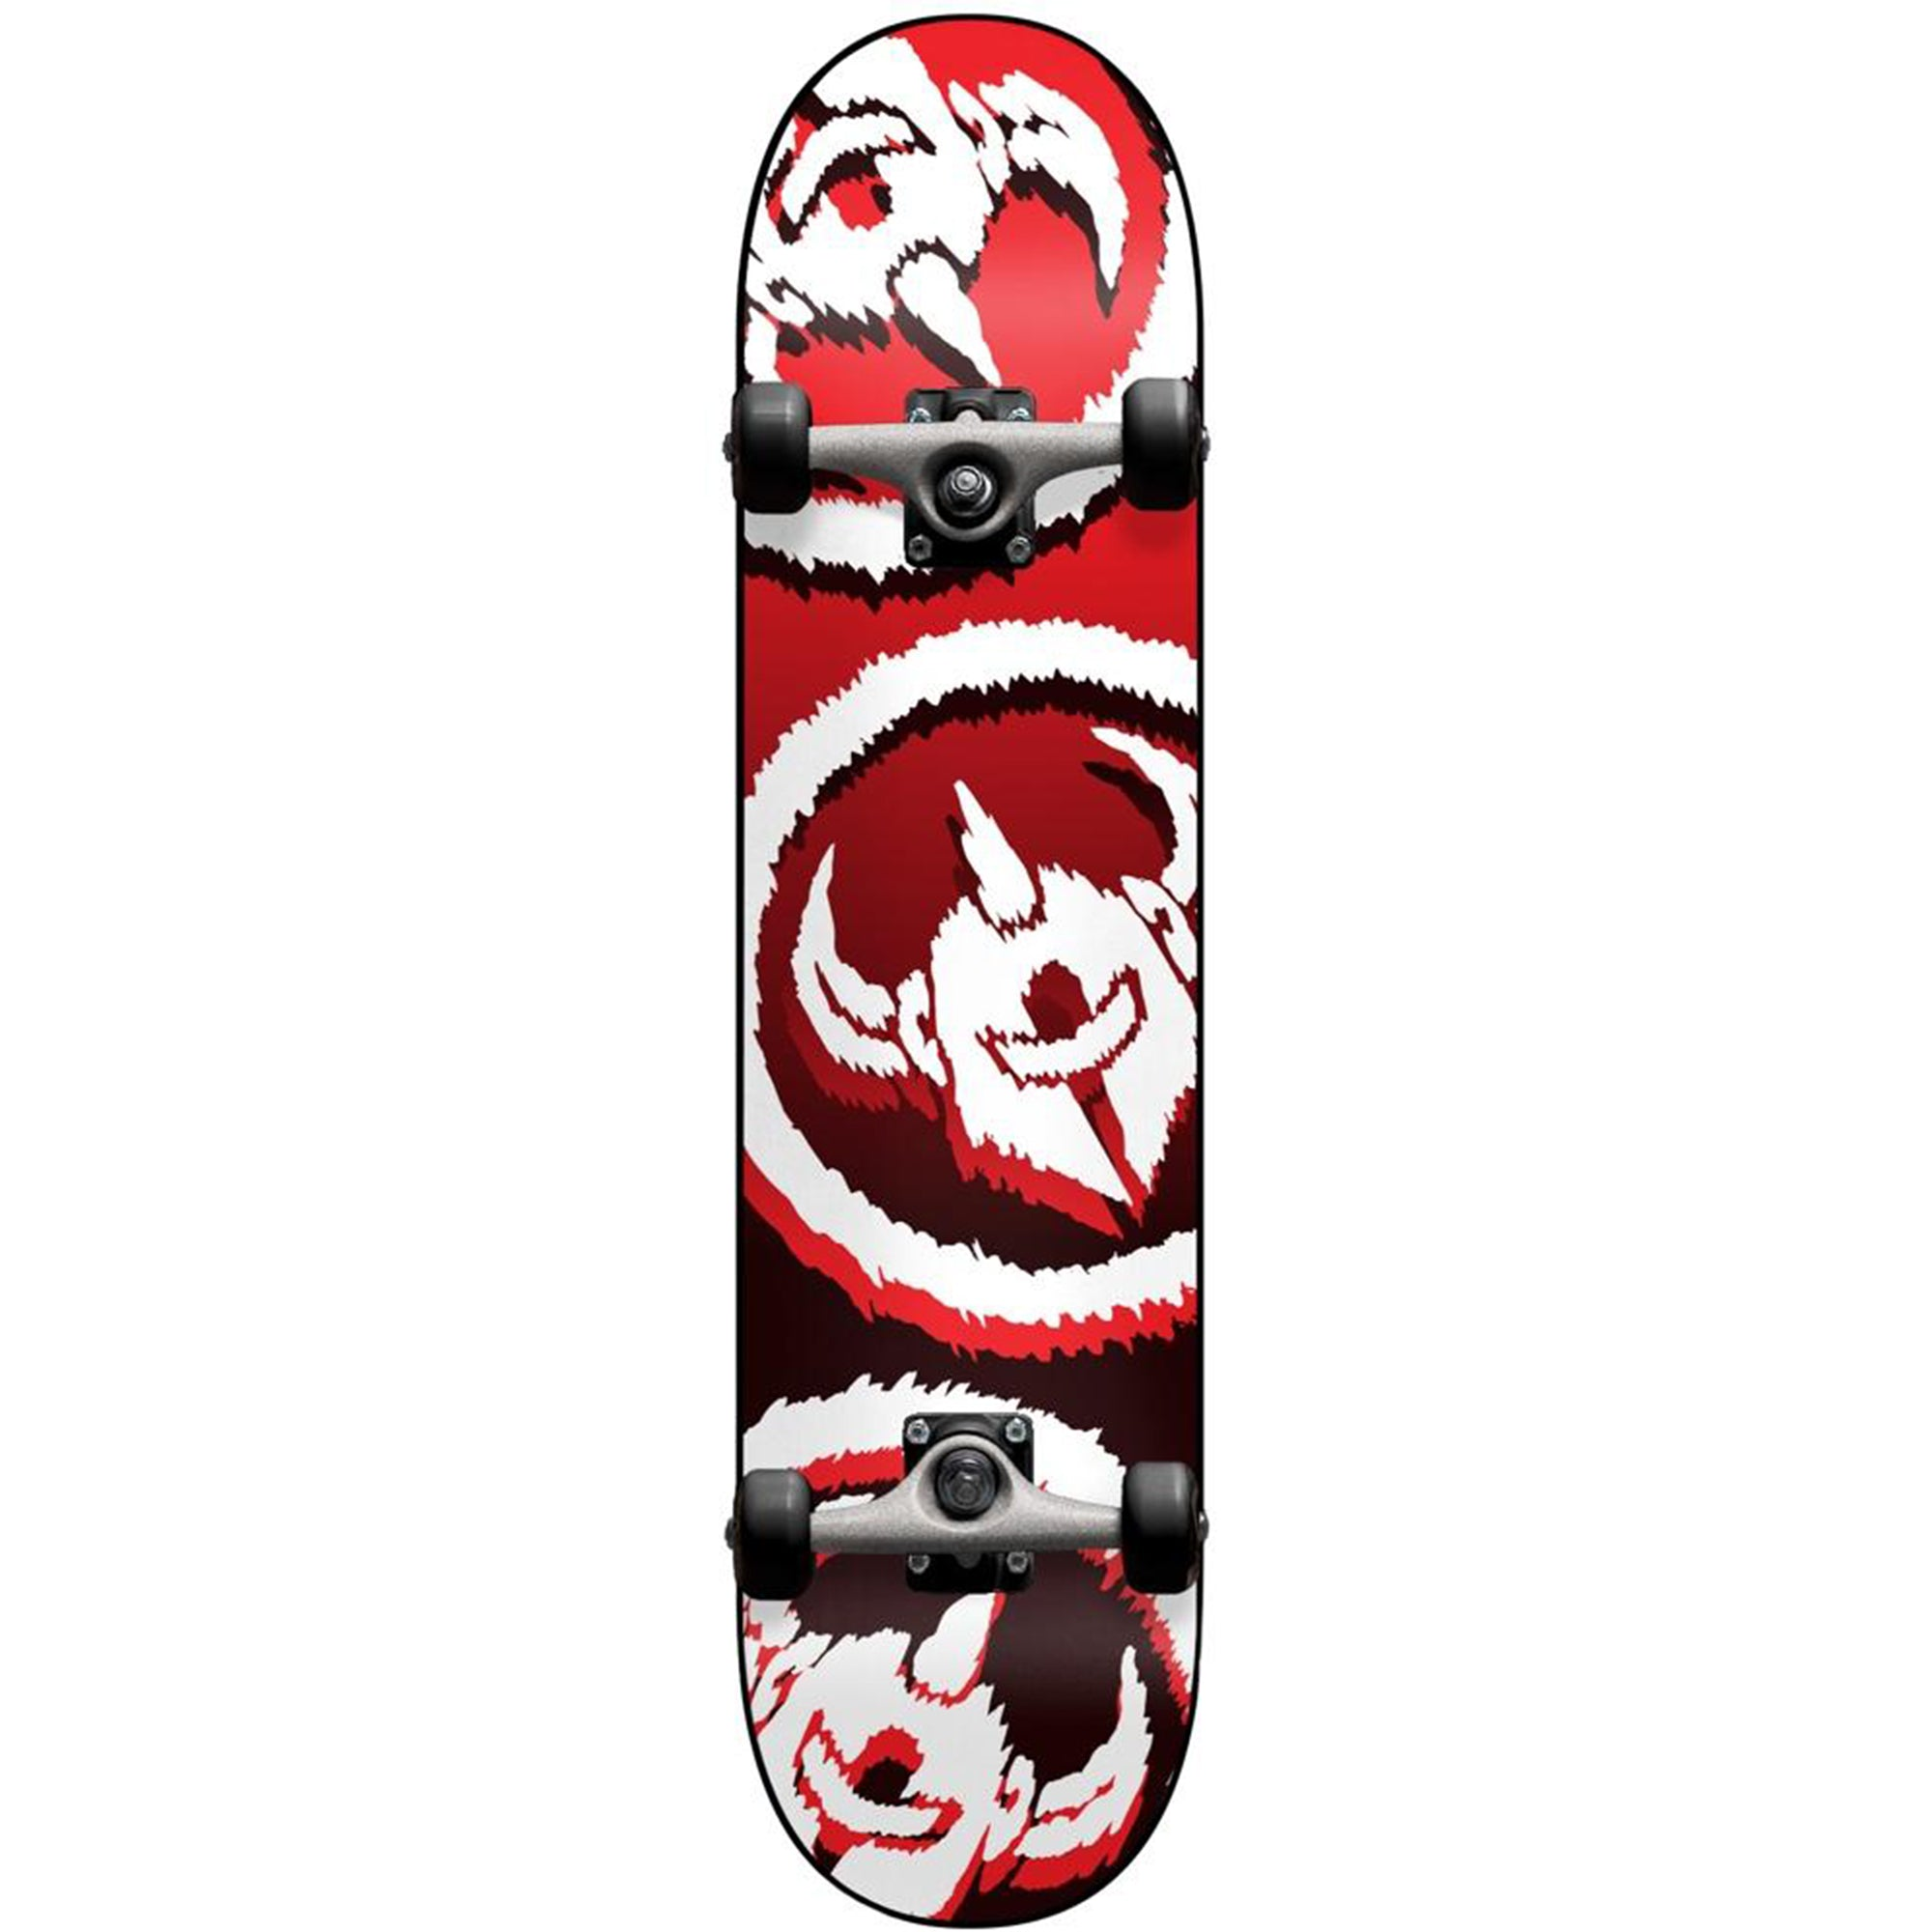 Darkstar Dissent 7.5 Complete Skateboard - Red